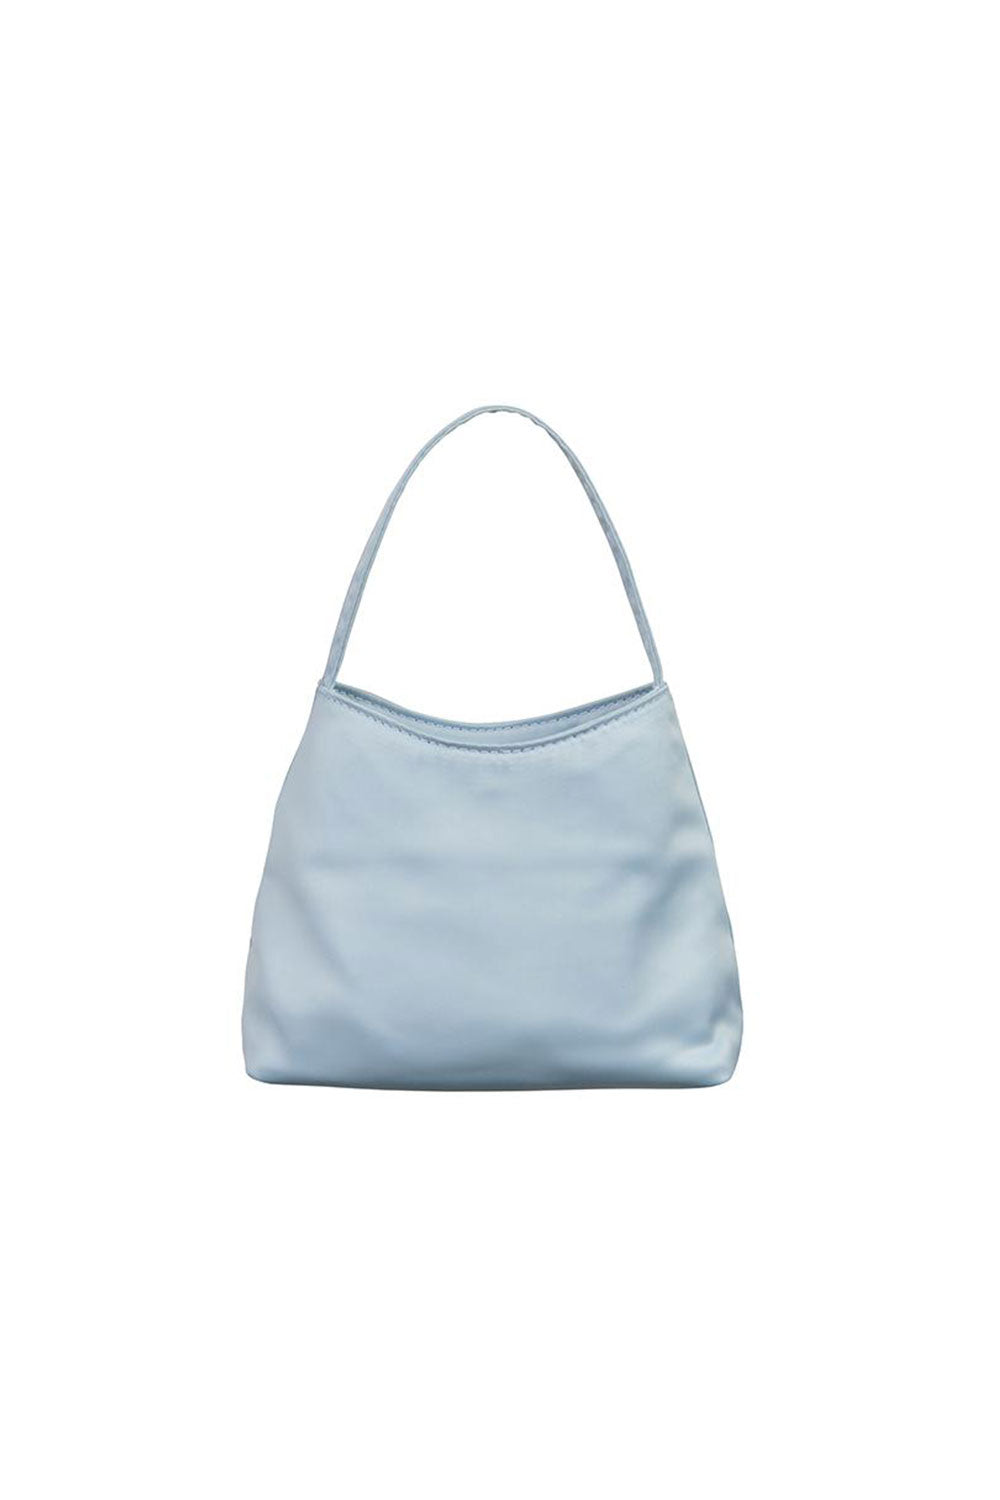 THE MINI CHLOE SATIN | POWDER BLUE